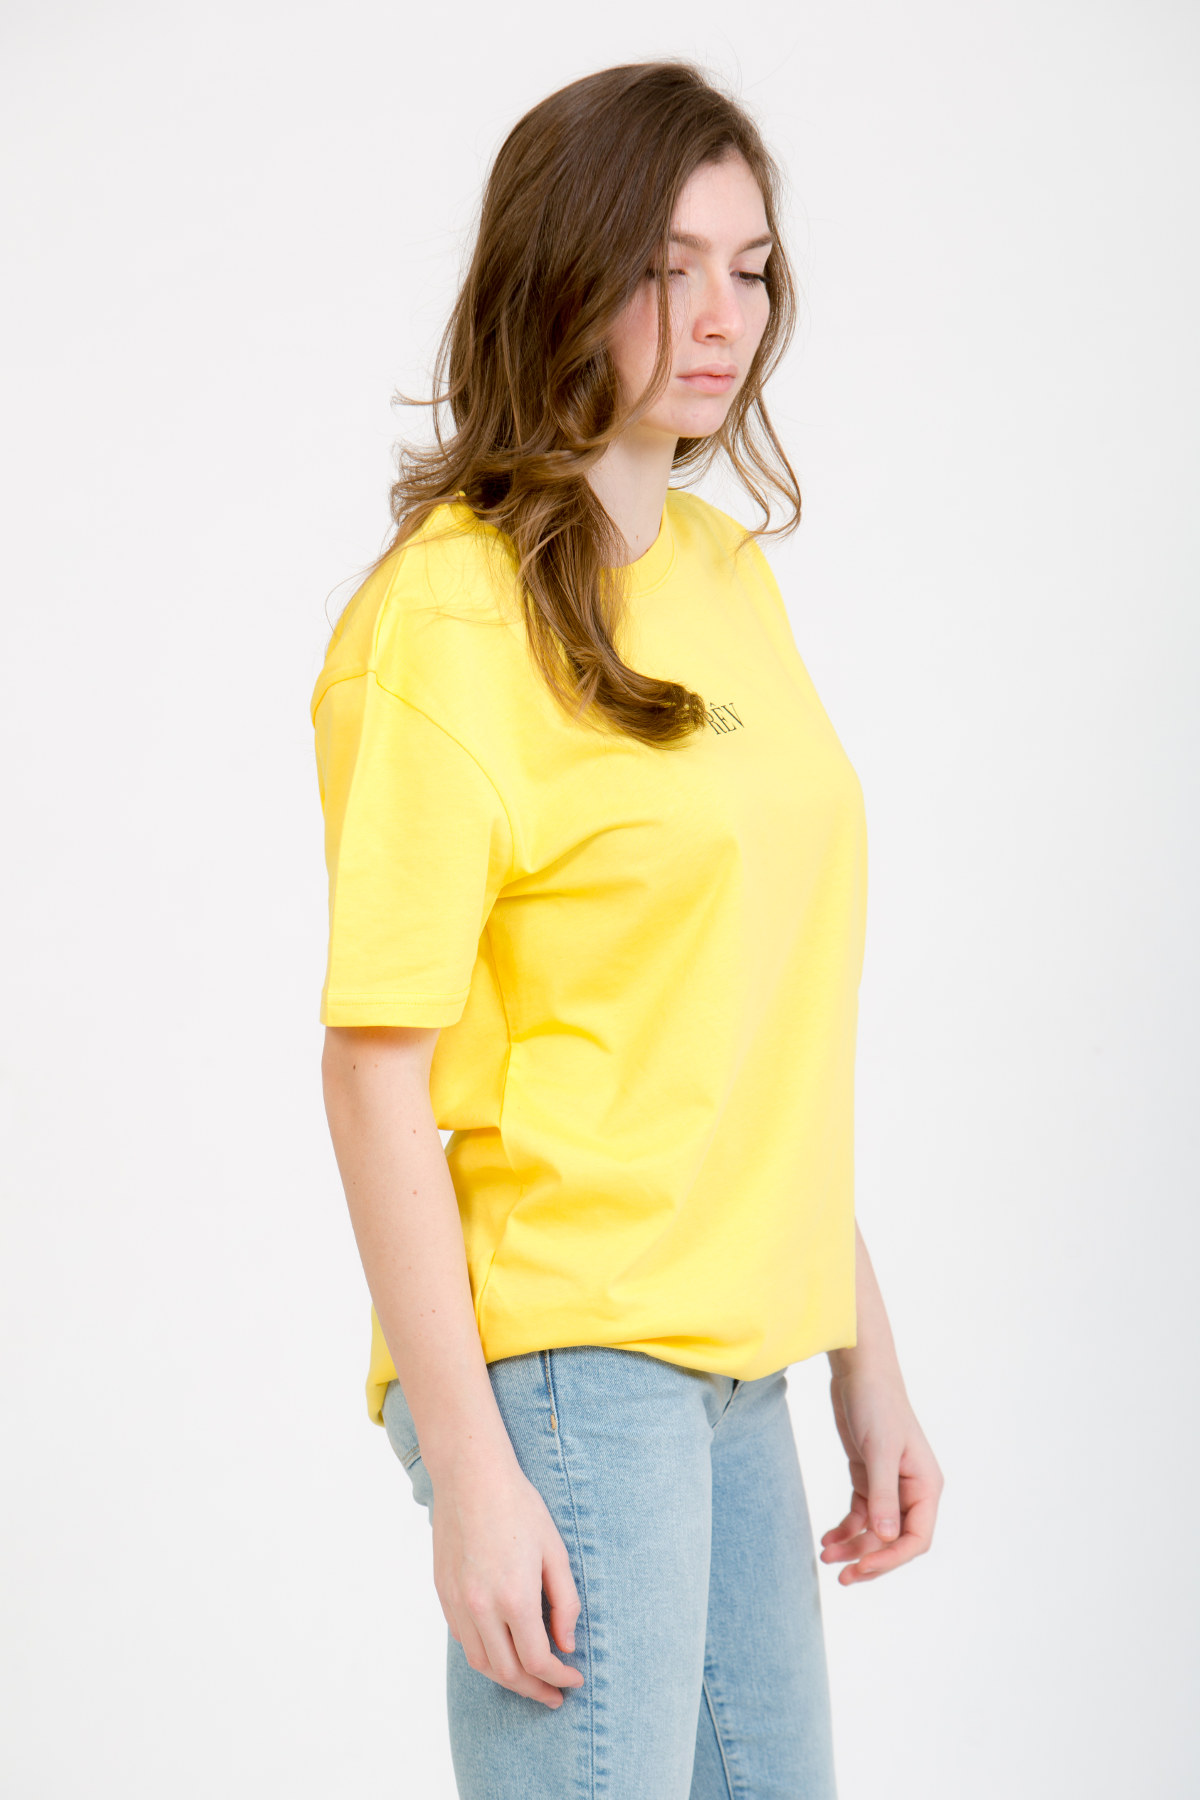 LERÊVERIES - T-shirt Oversize Donna RÊV Manifesto Colore Giallo - C